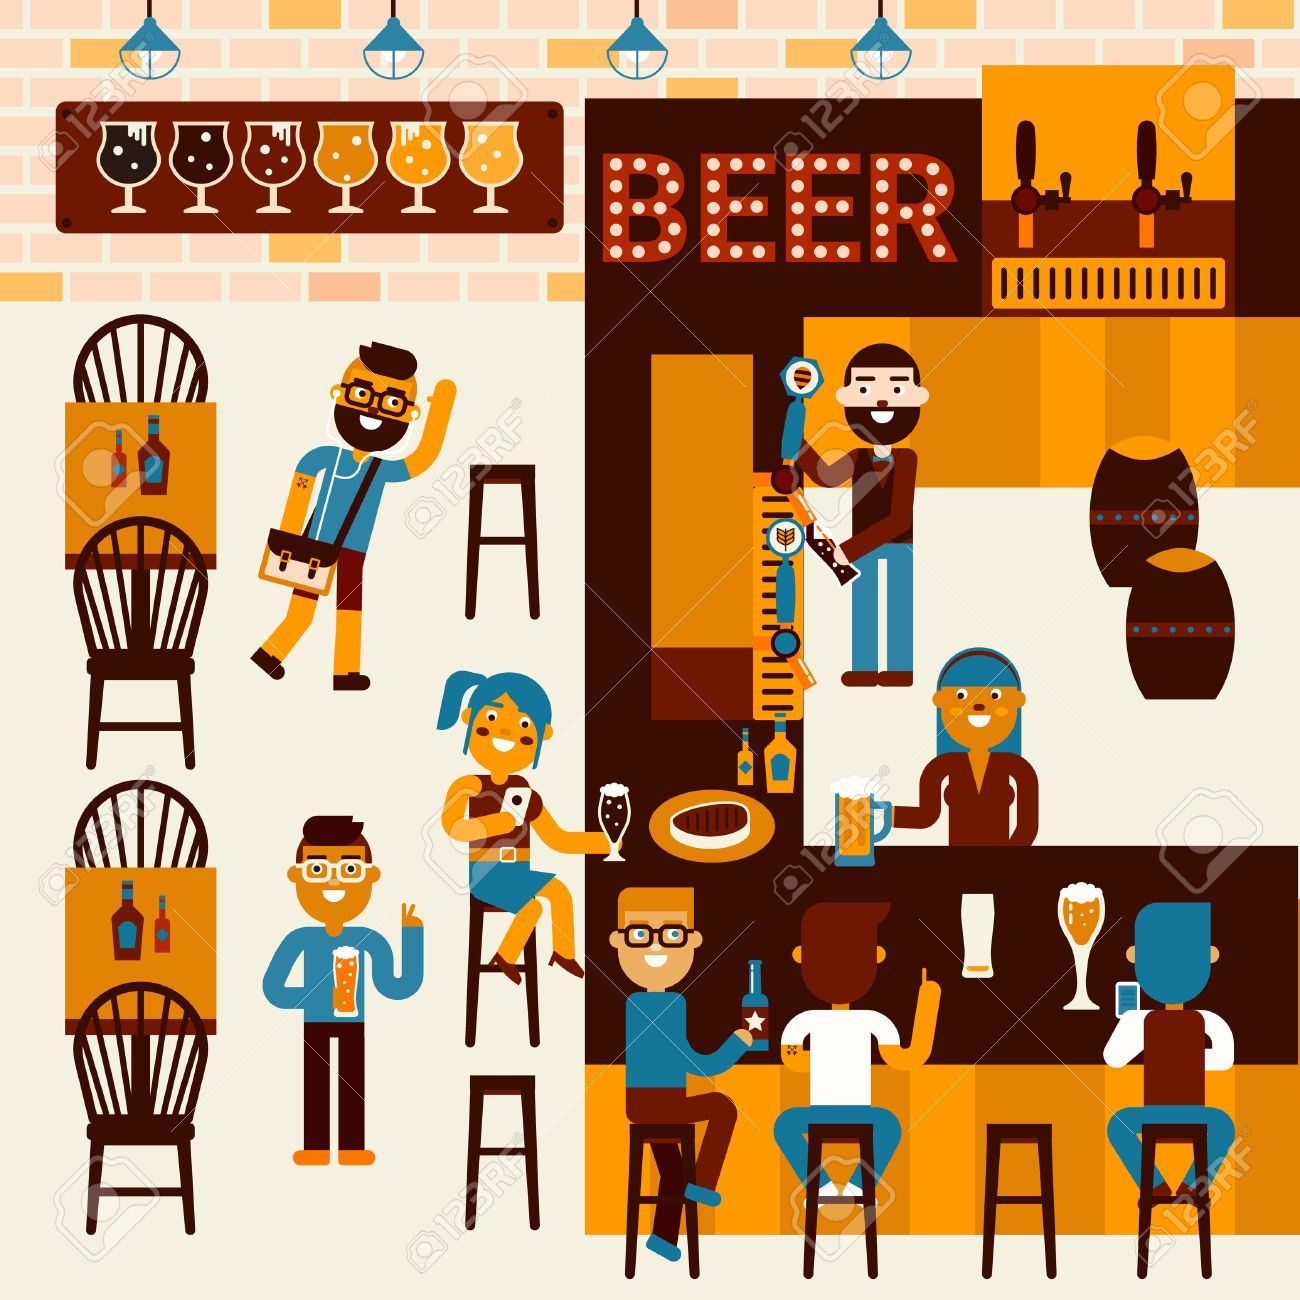 Illustration of beer restaurant community scene with many people - 47336509